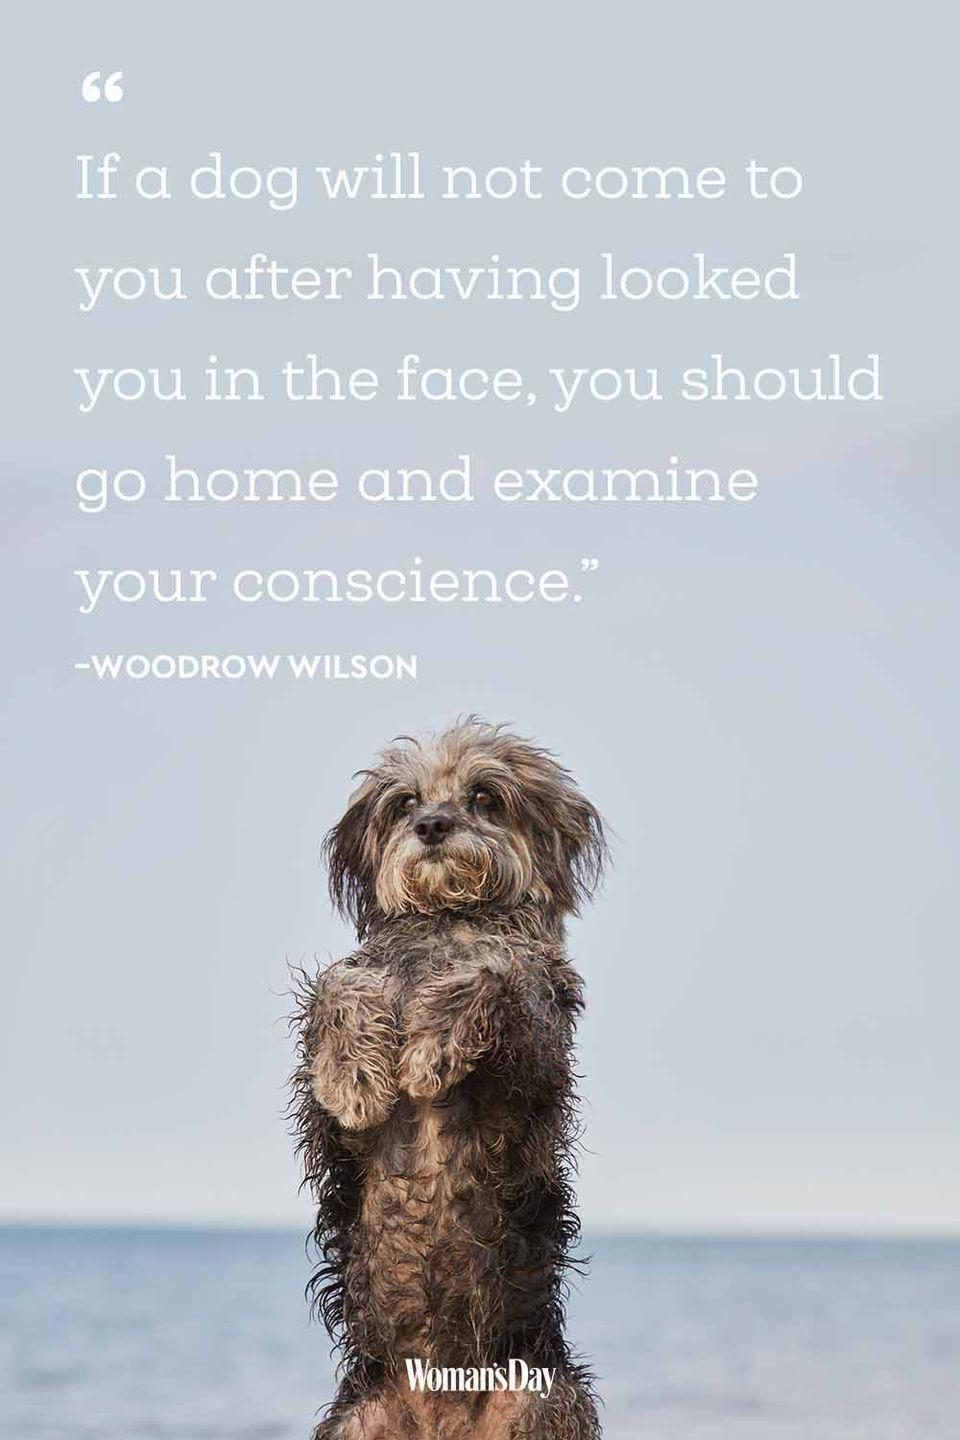 20 Best Dog Quotes That Perfectly Describe Your Fur Baby